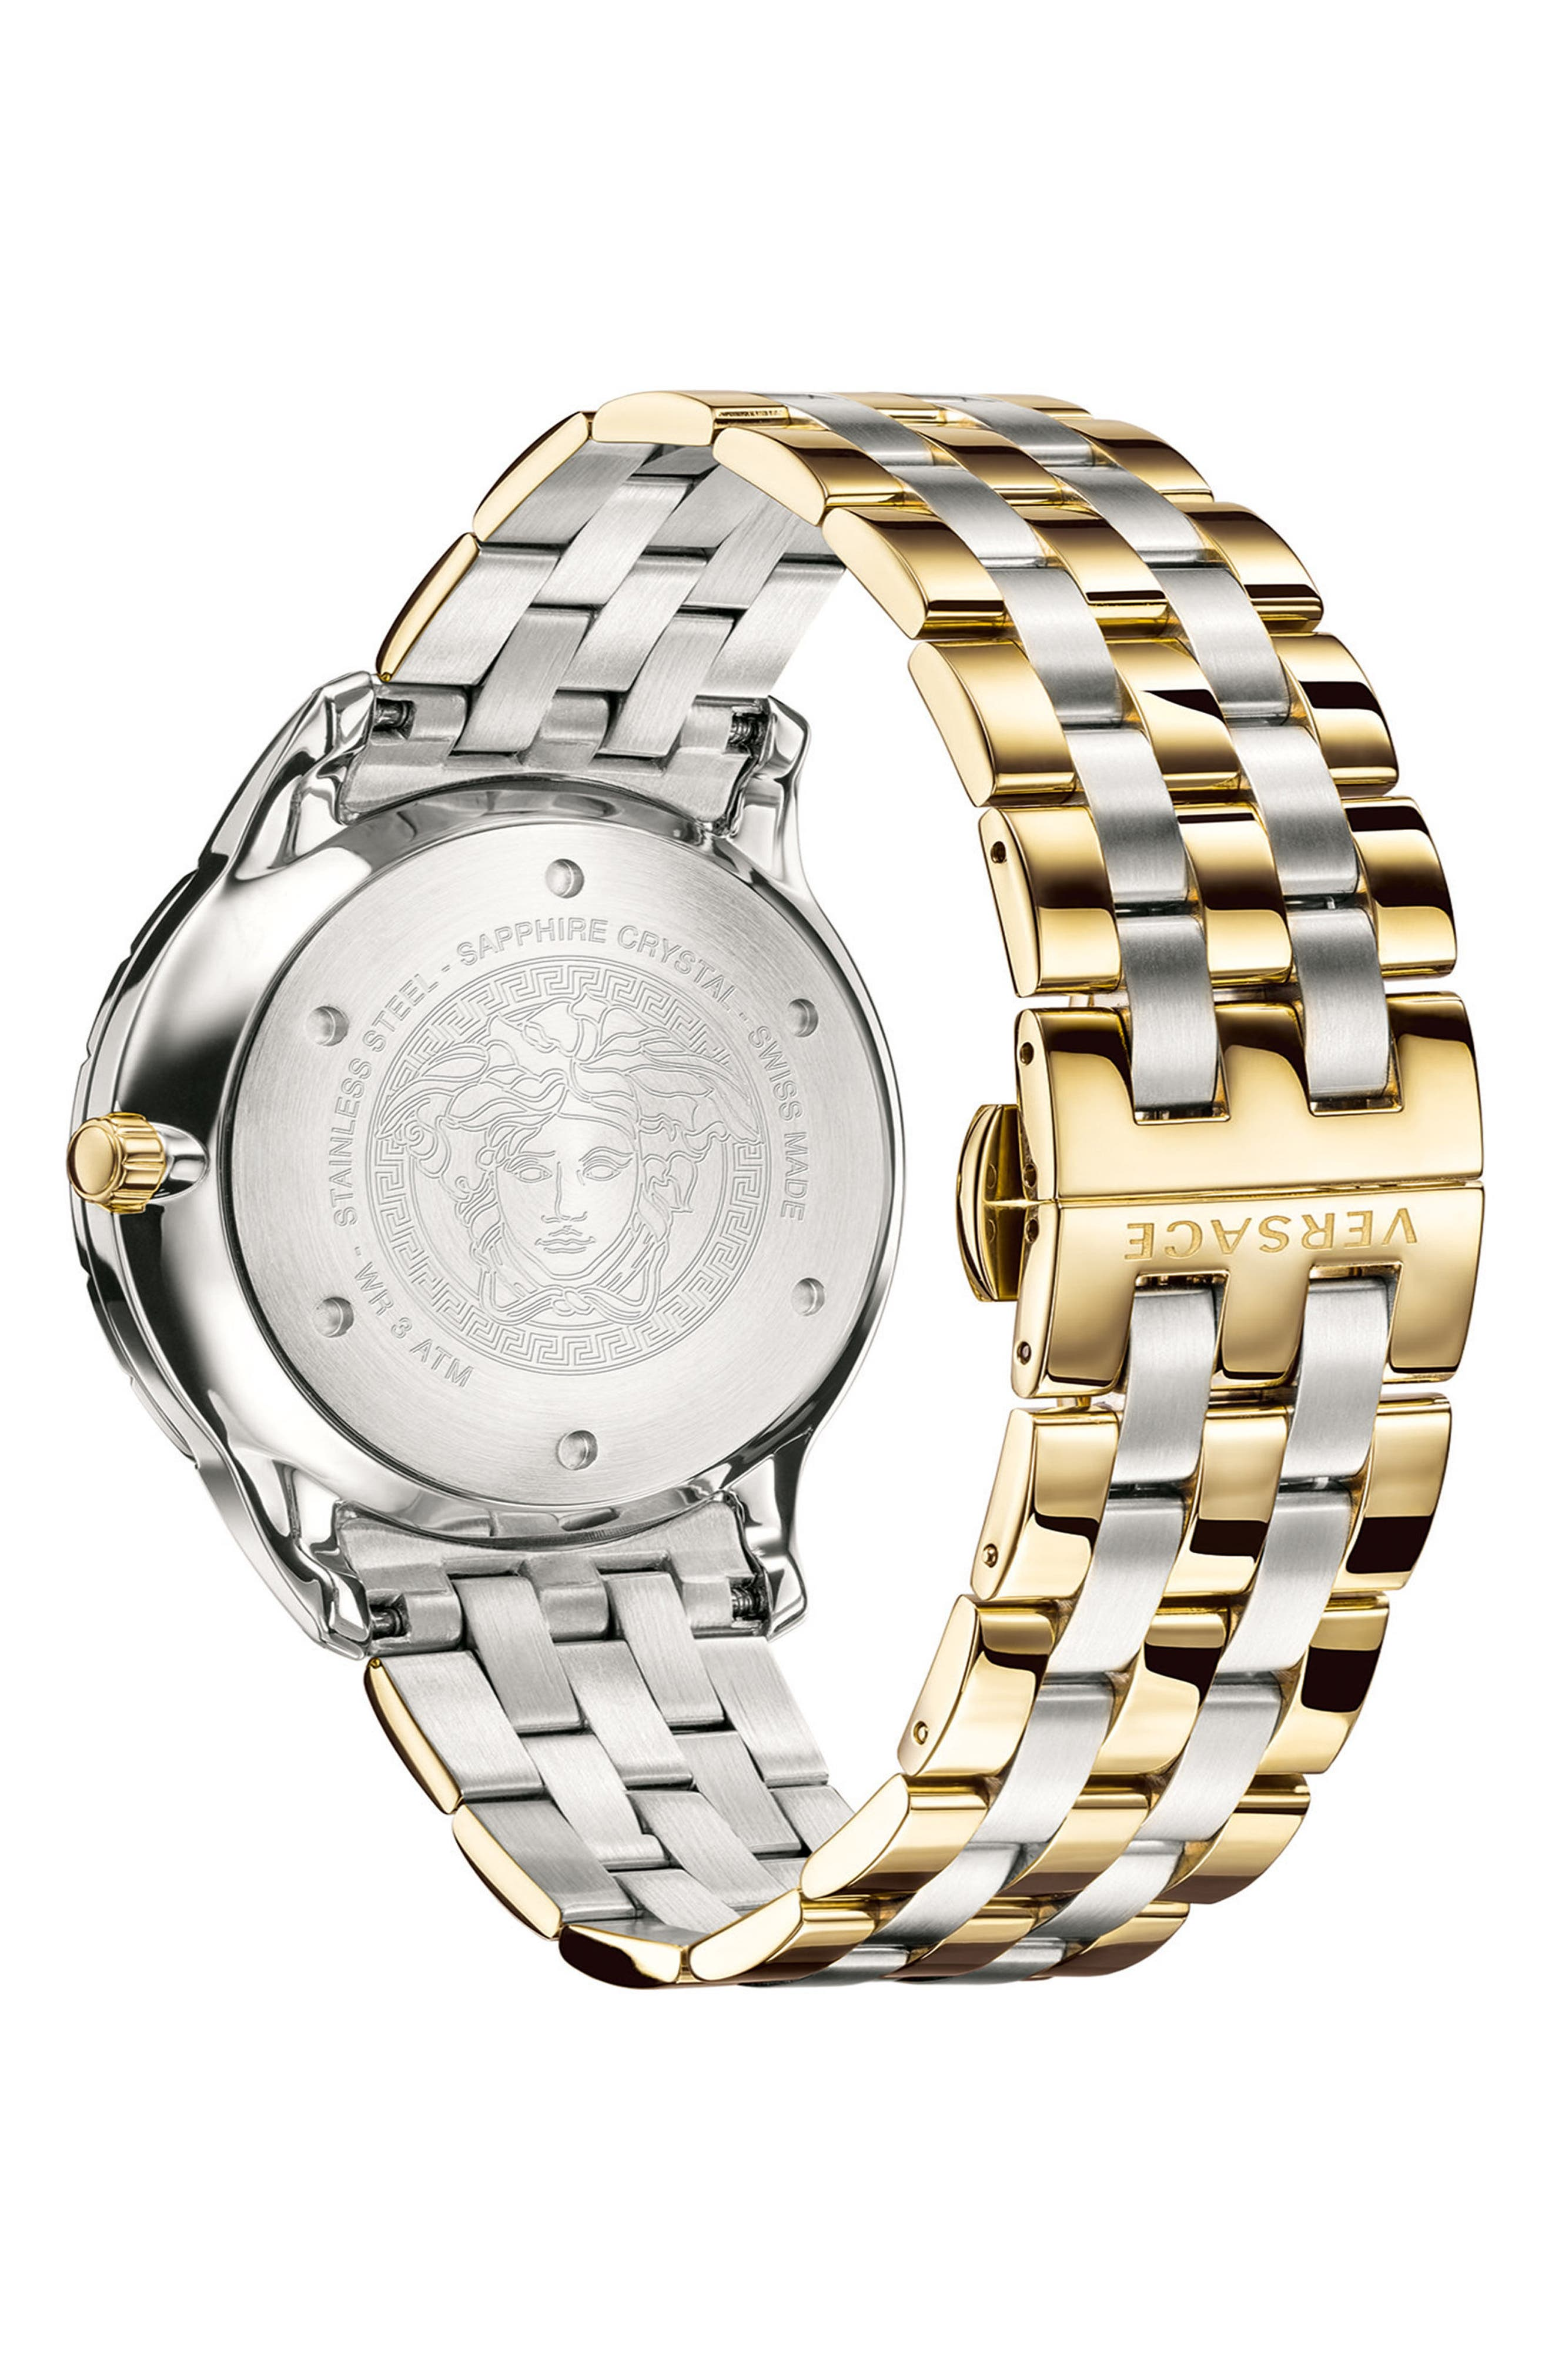 VERSACE, Univers Bracelet Watch, 43mm, Alternate thumbnail 2, color, SILVER/ GREEN/ GOLD